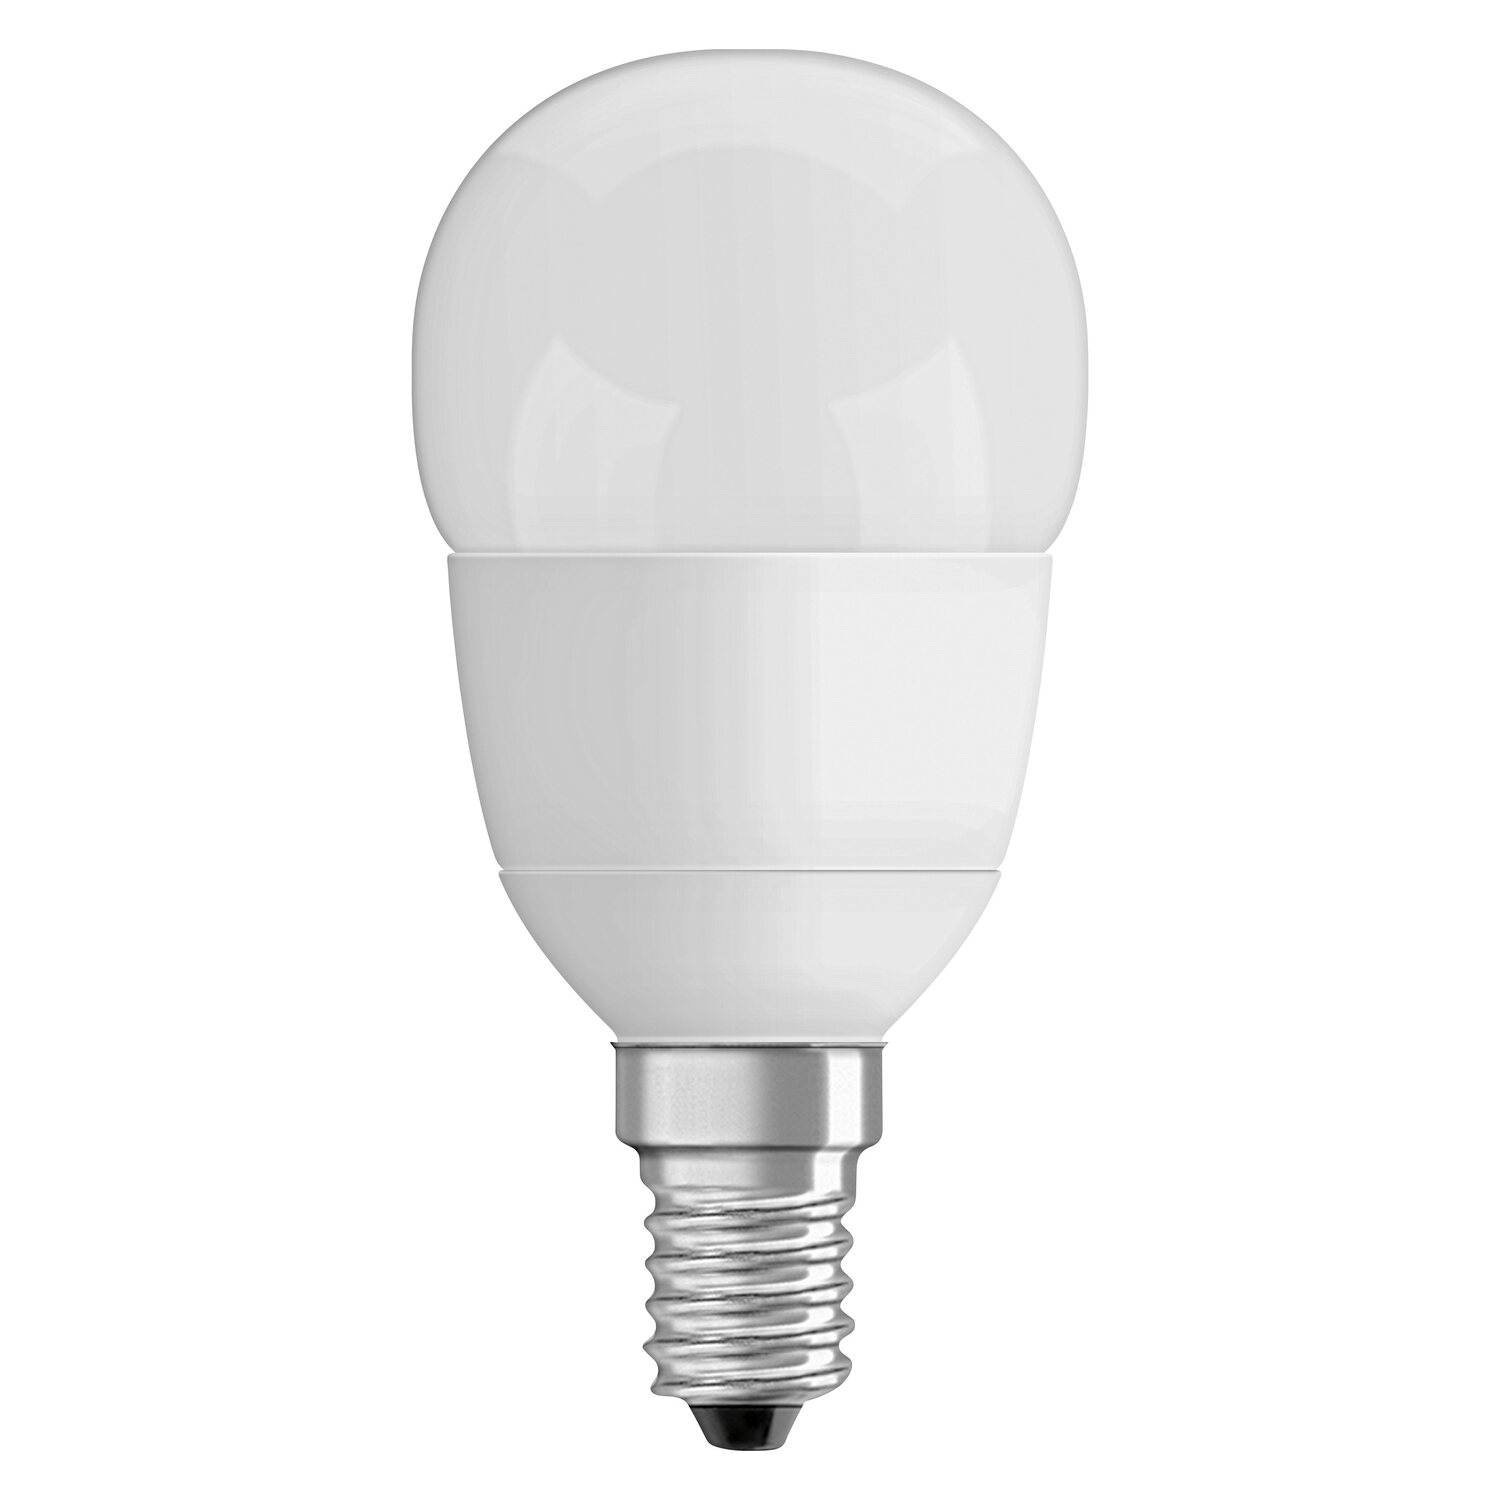 Osram led lampe tropfenform e14 6 w 470 lm warmwei matt osram led lampe tropfenform e14 6 w 470 lm warmwei matt dimmbar parisarafo Image collections